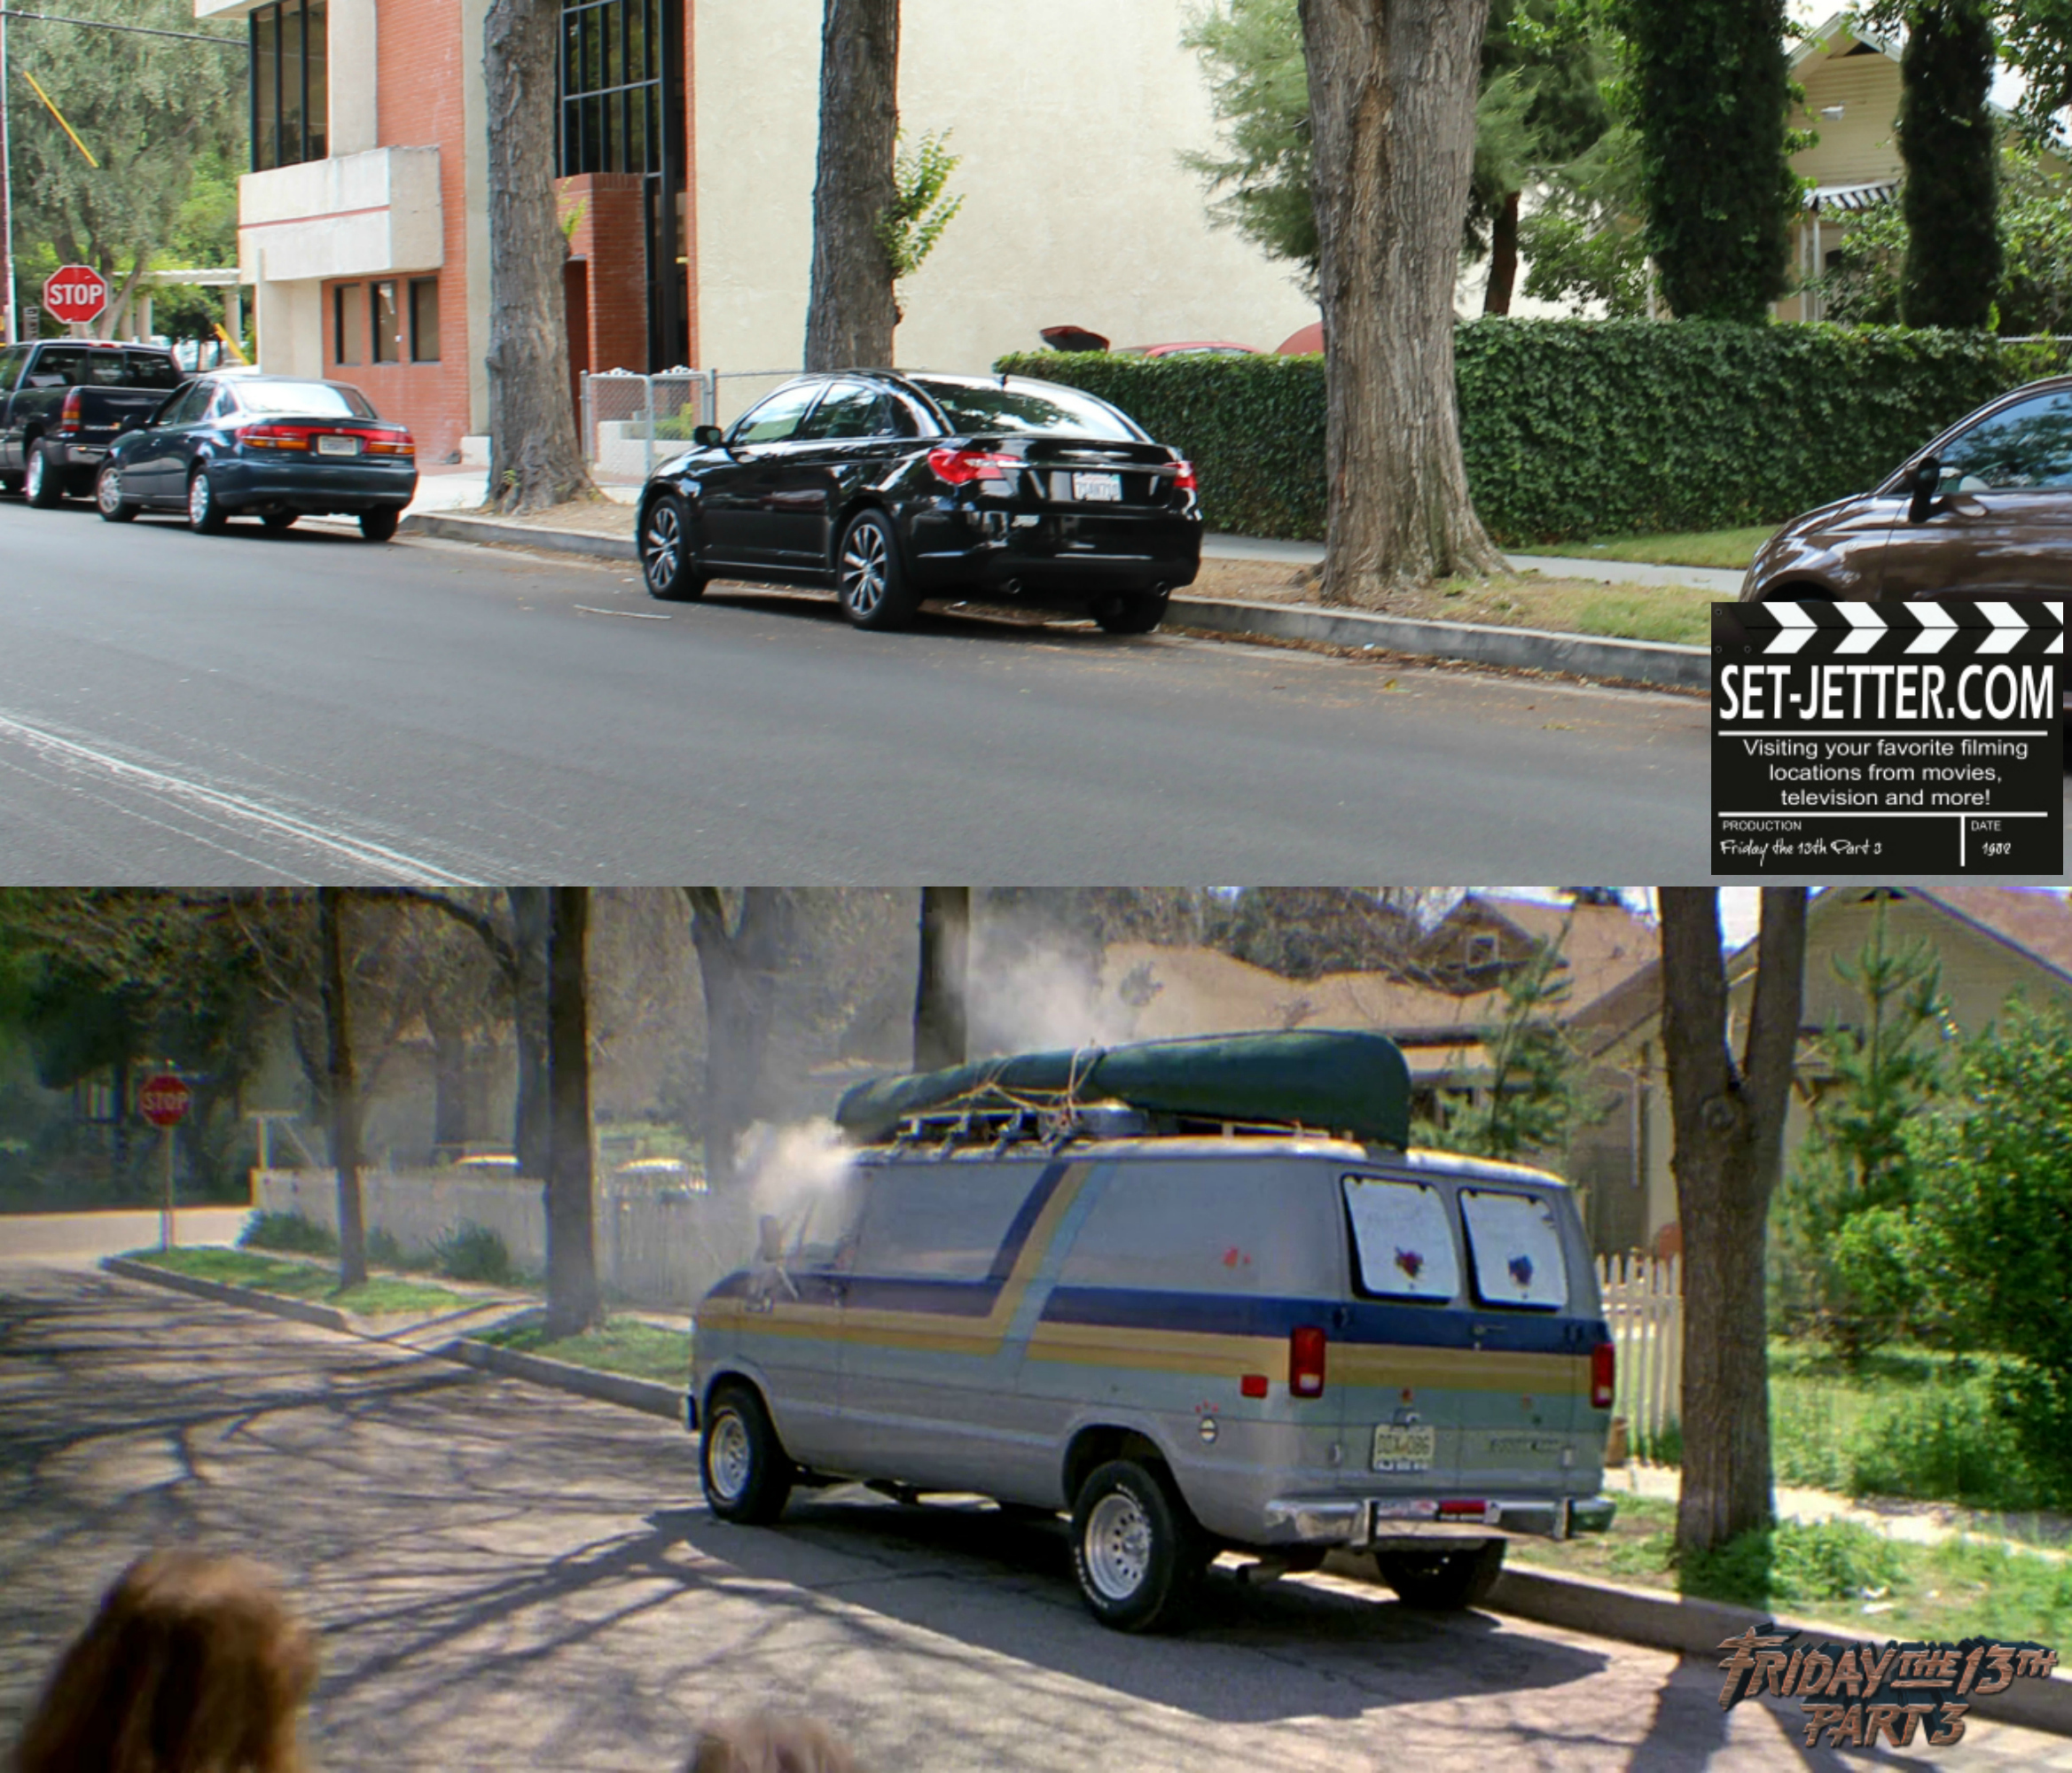 Friday the 13th Part 3 comparison 35.jpg